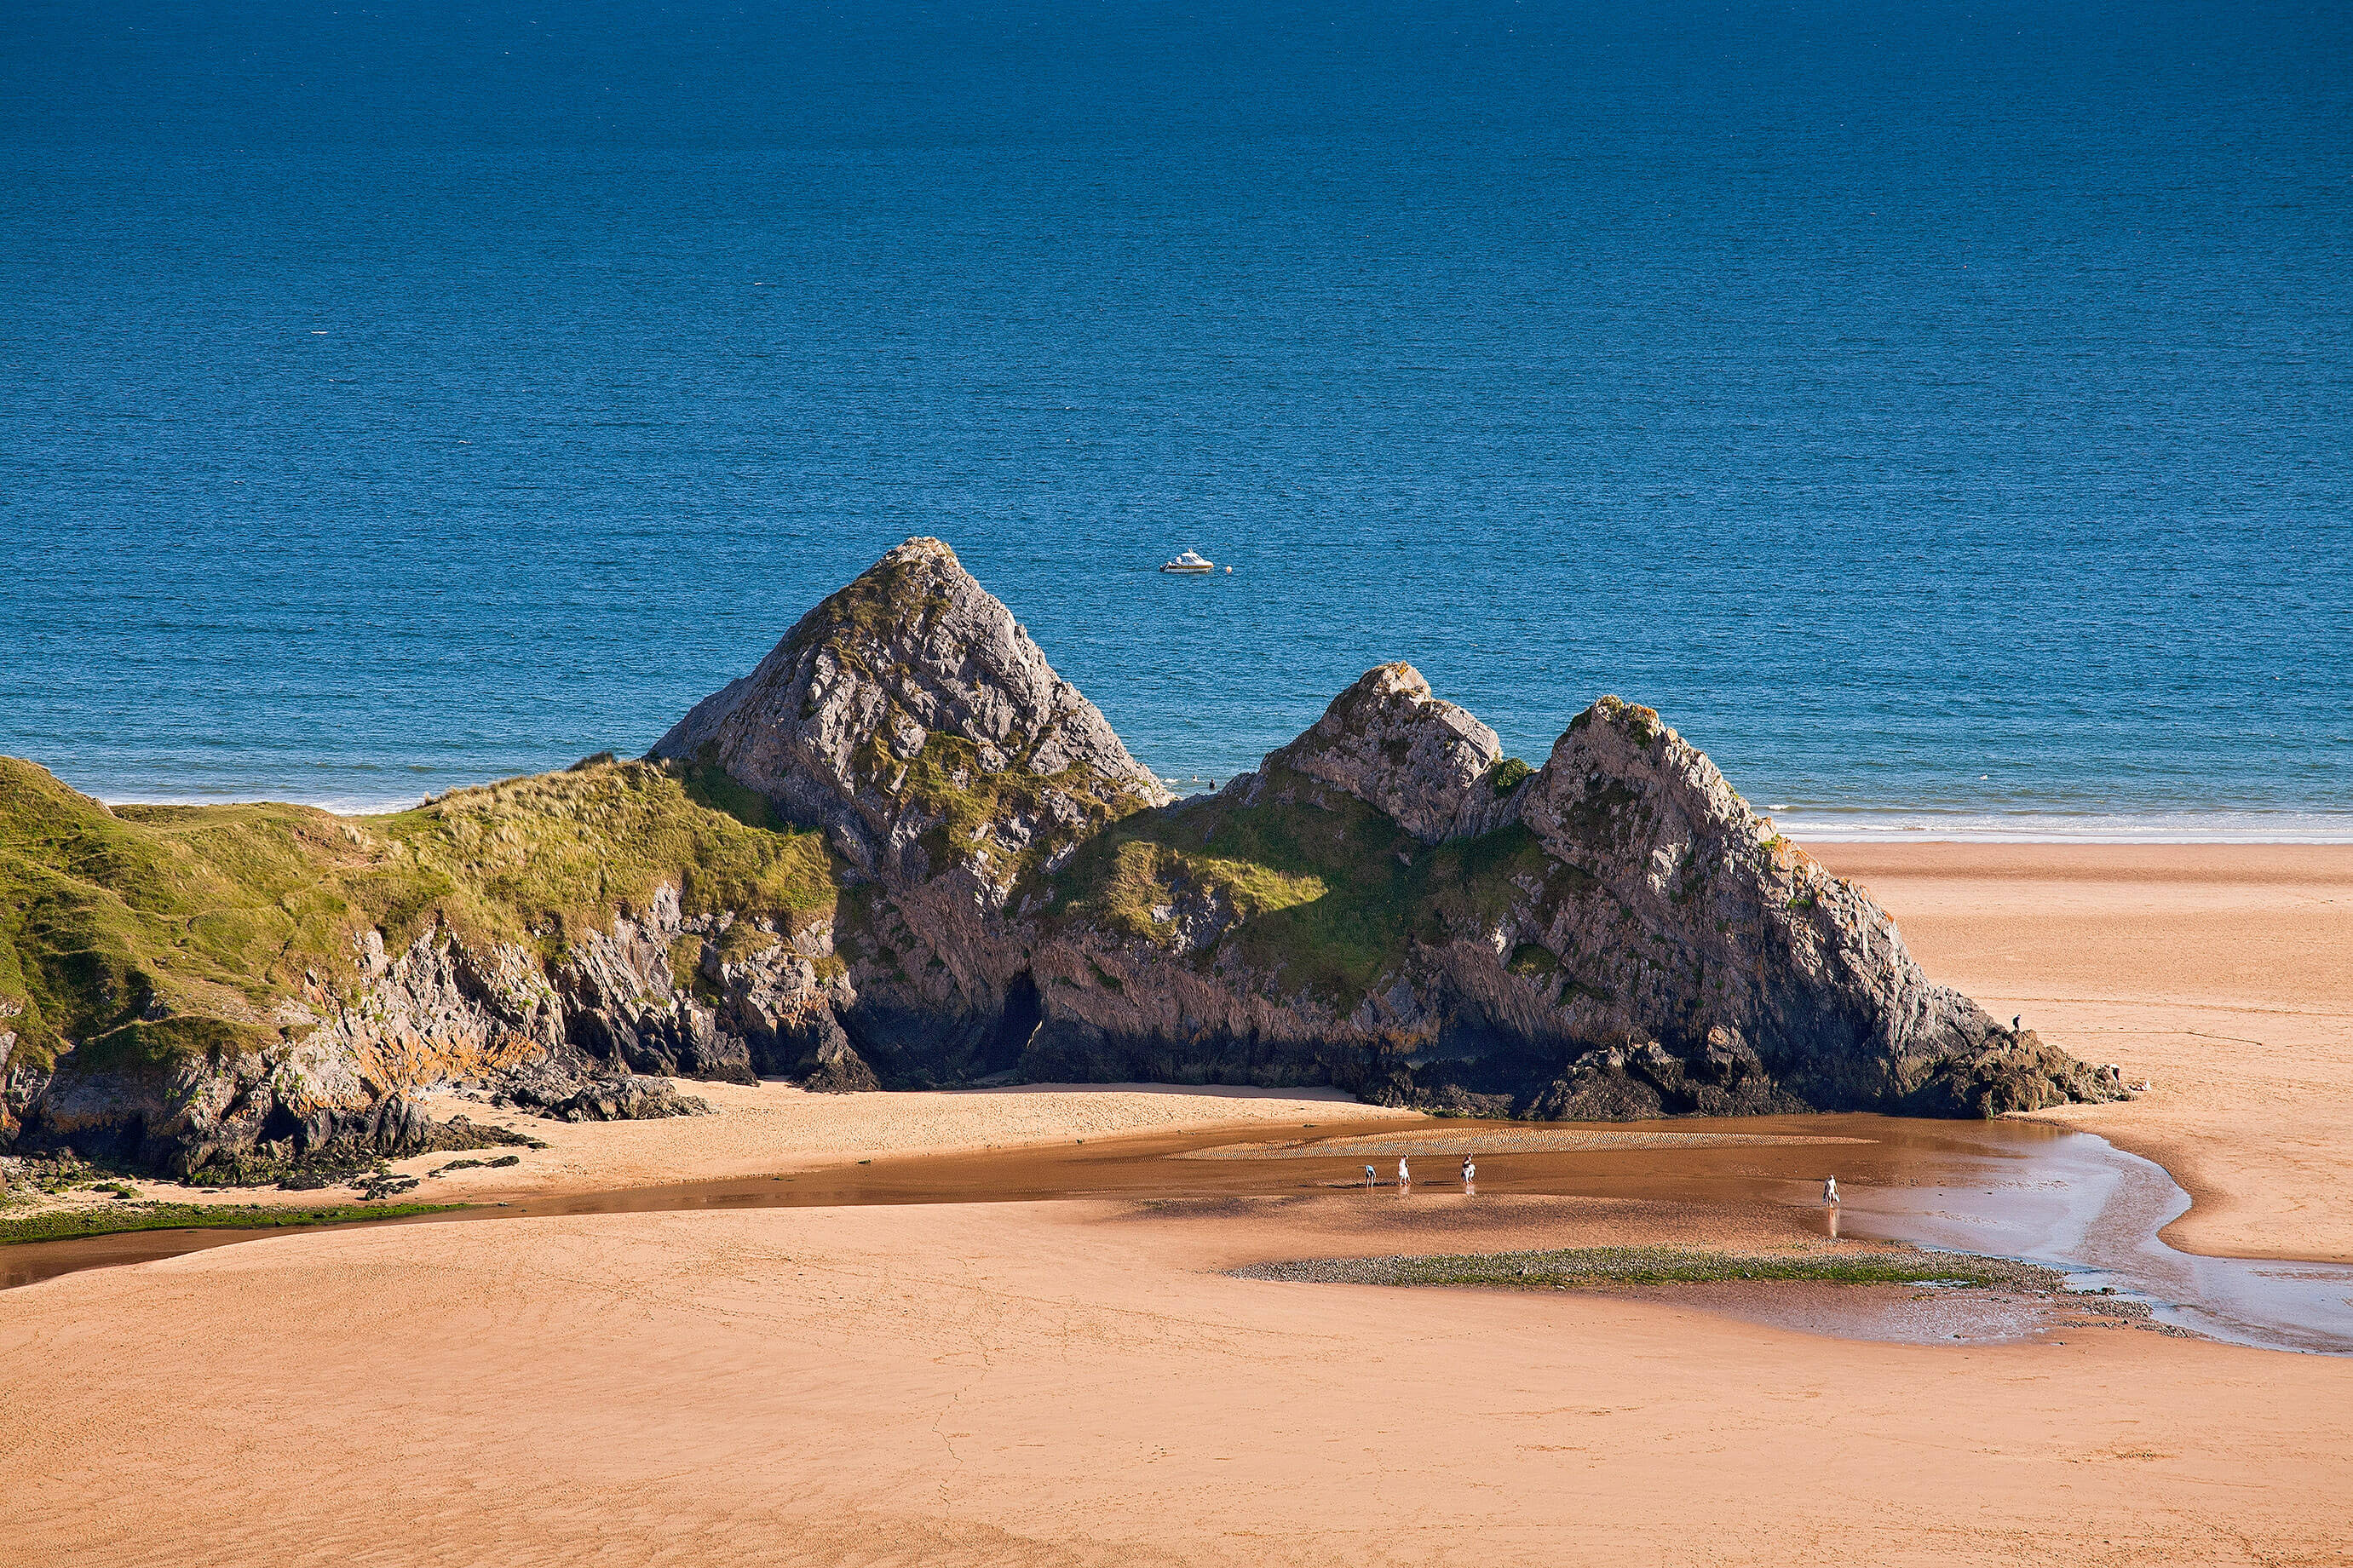 Close up of the three cliffs at Three Cliffs Bay